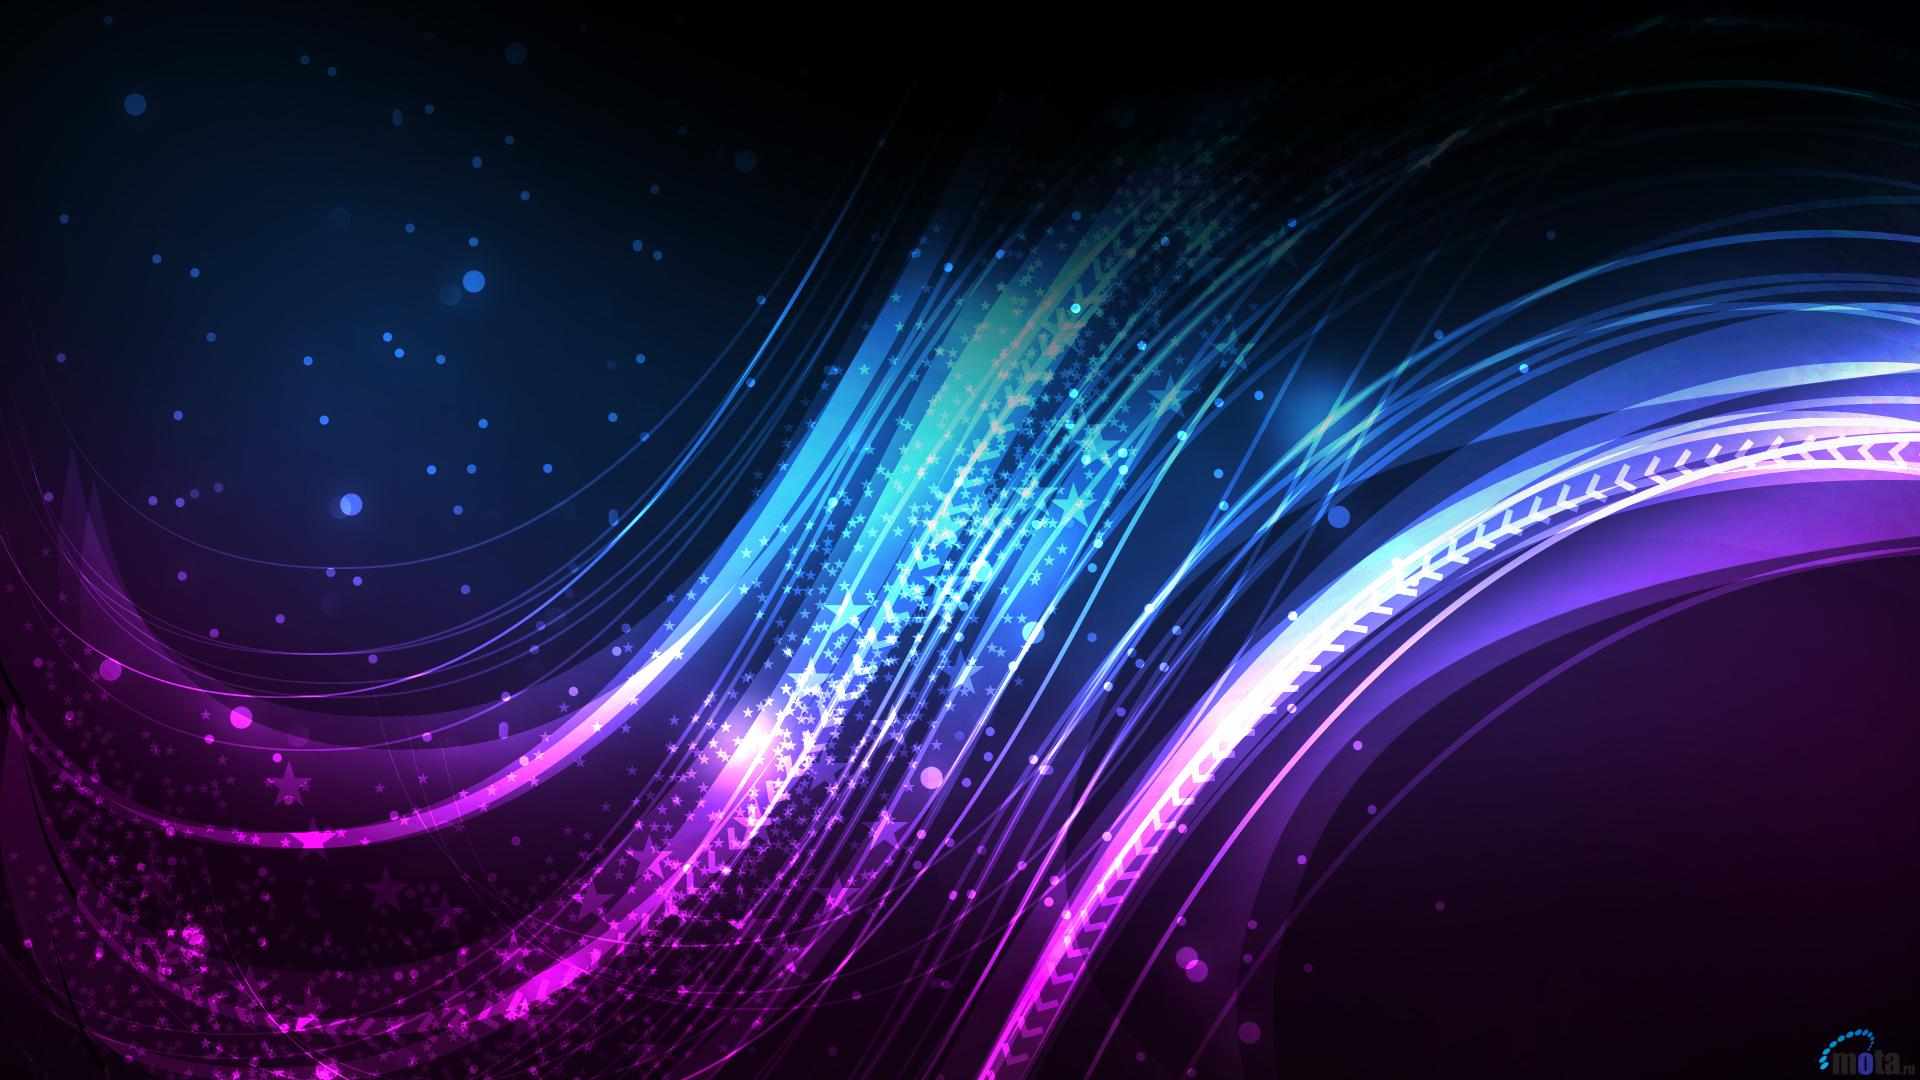 Download Wallpaper Purple lines and curves 1920 x 1080 HDTV 1080p 1920x1080